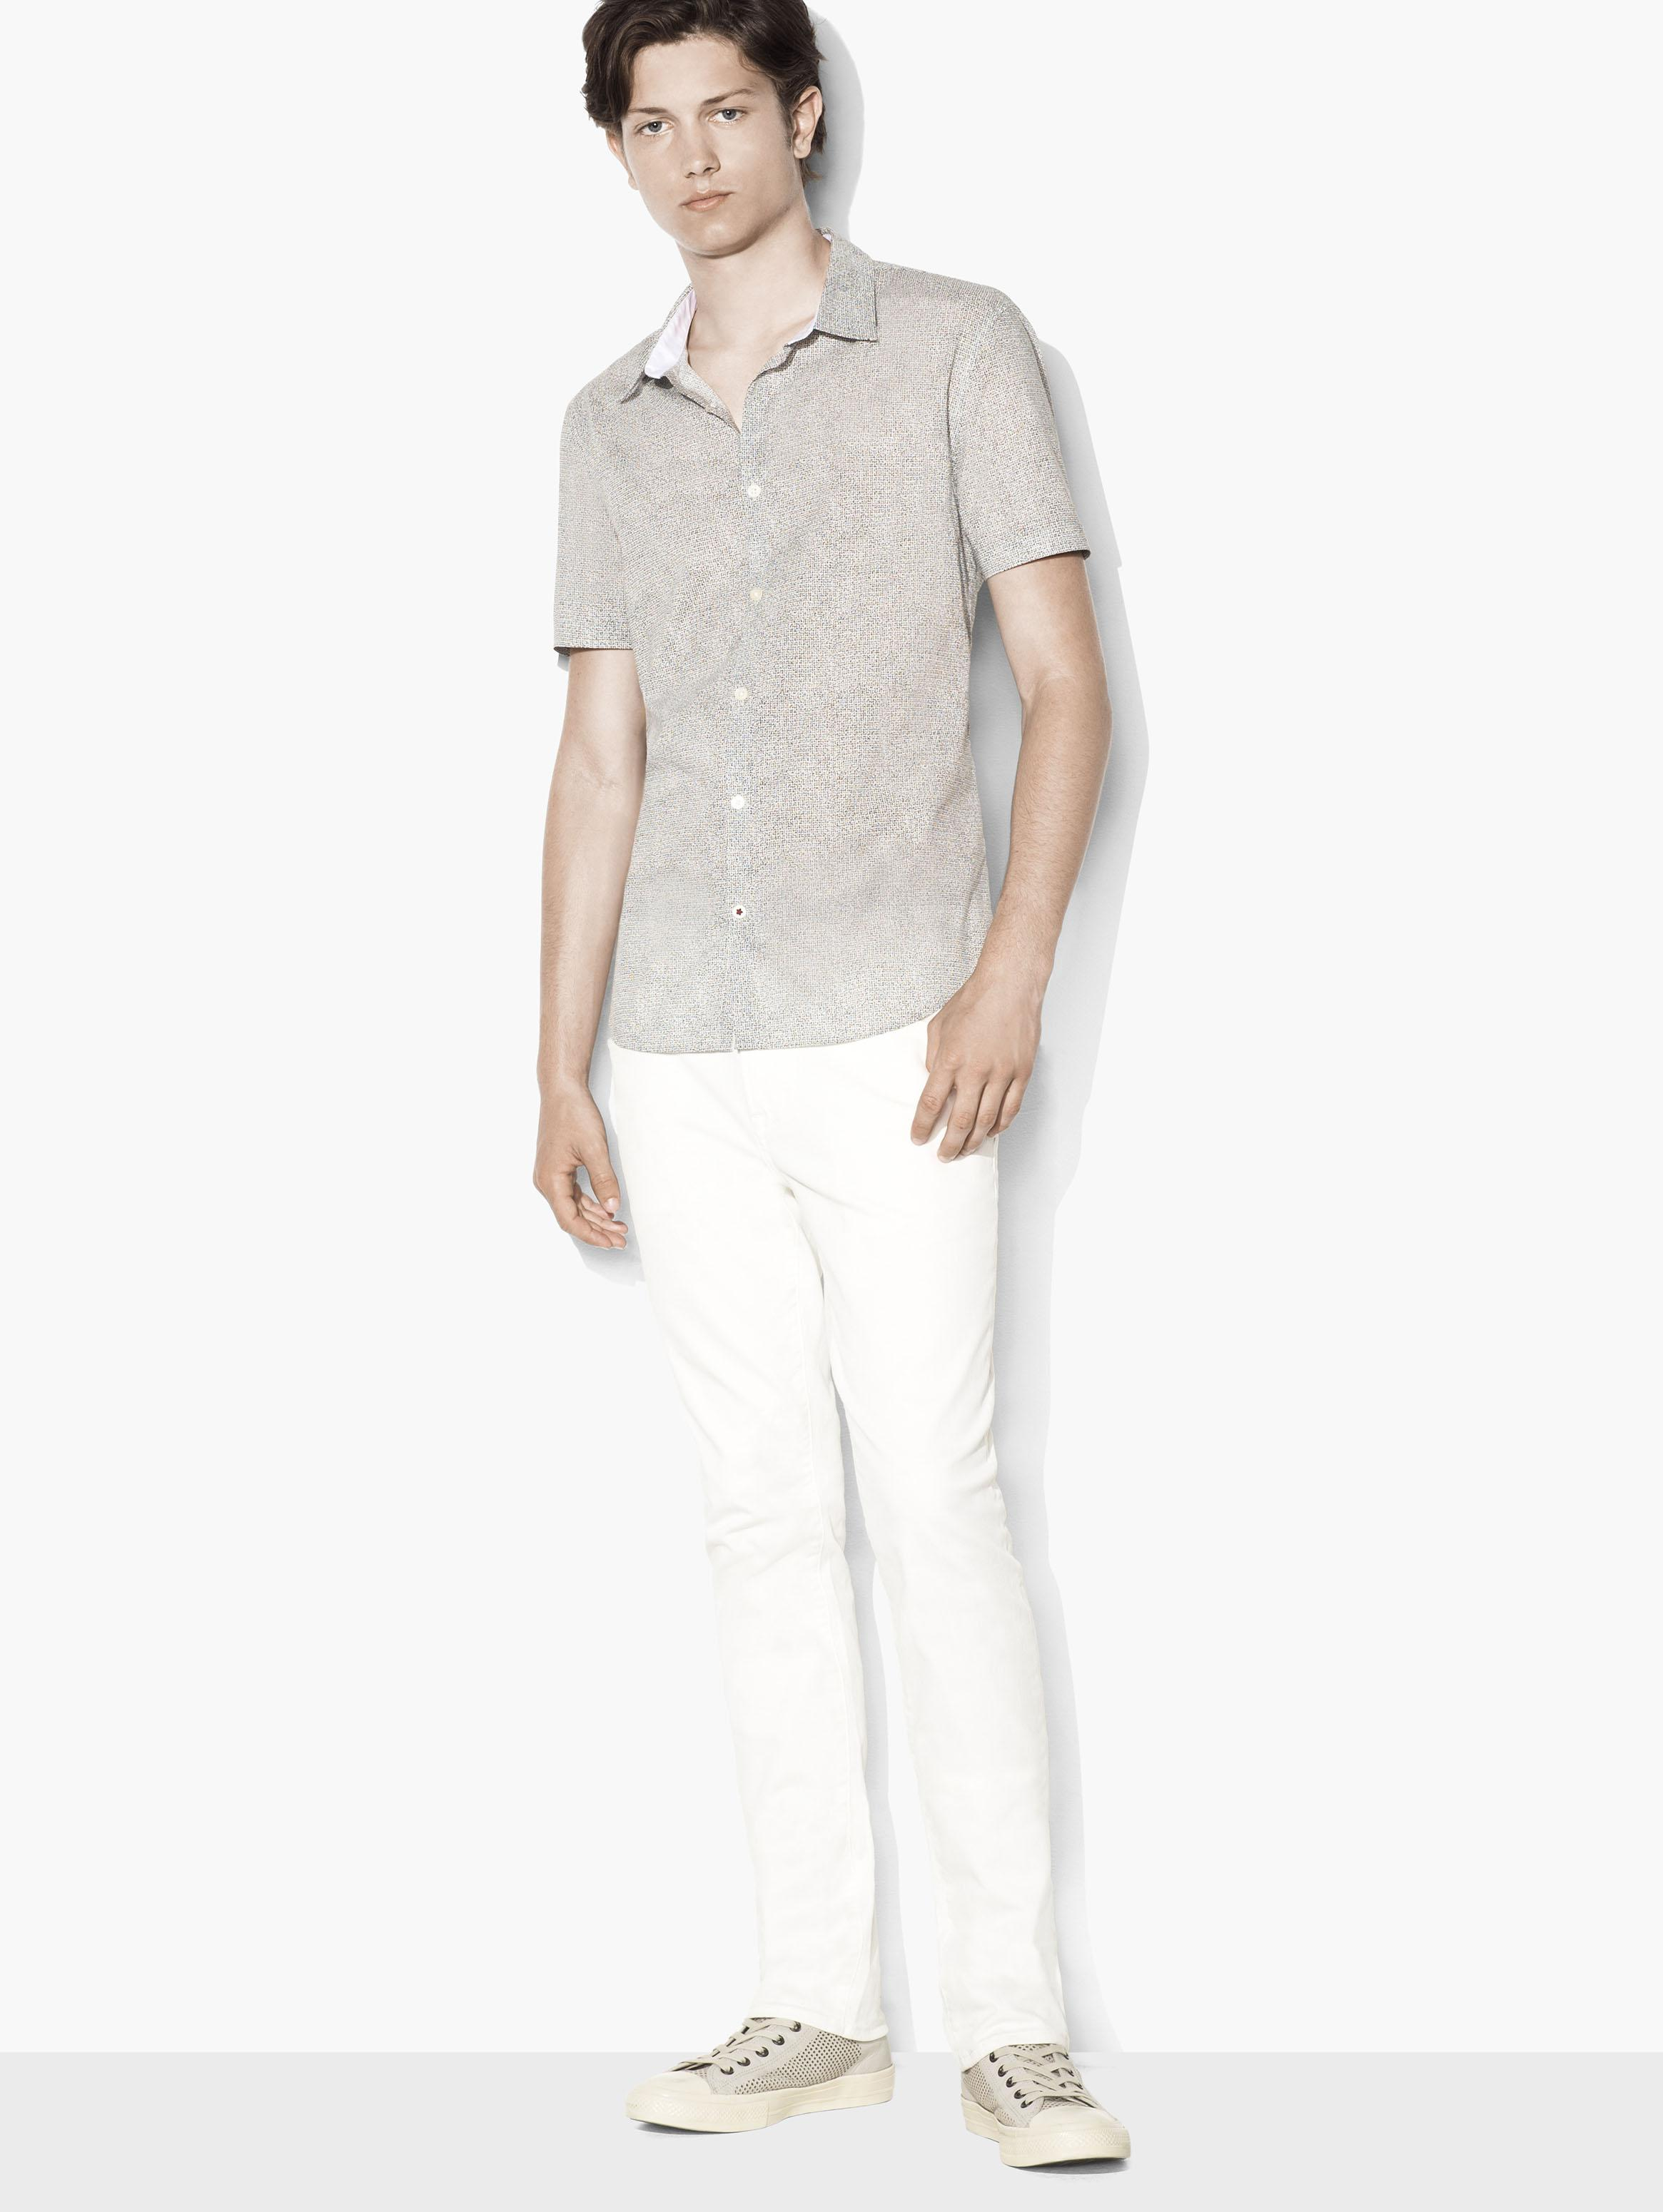 Textured Mayfield Shirt